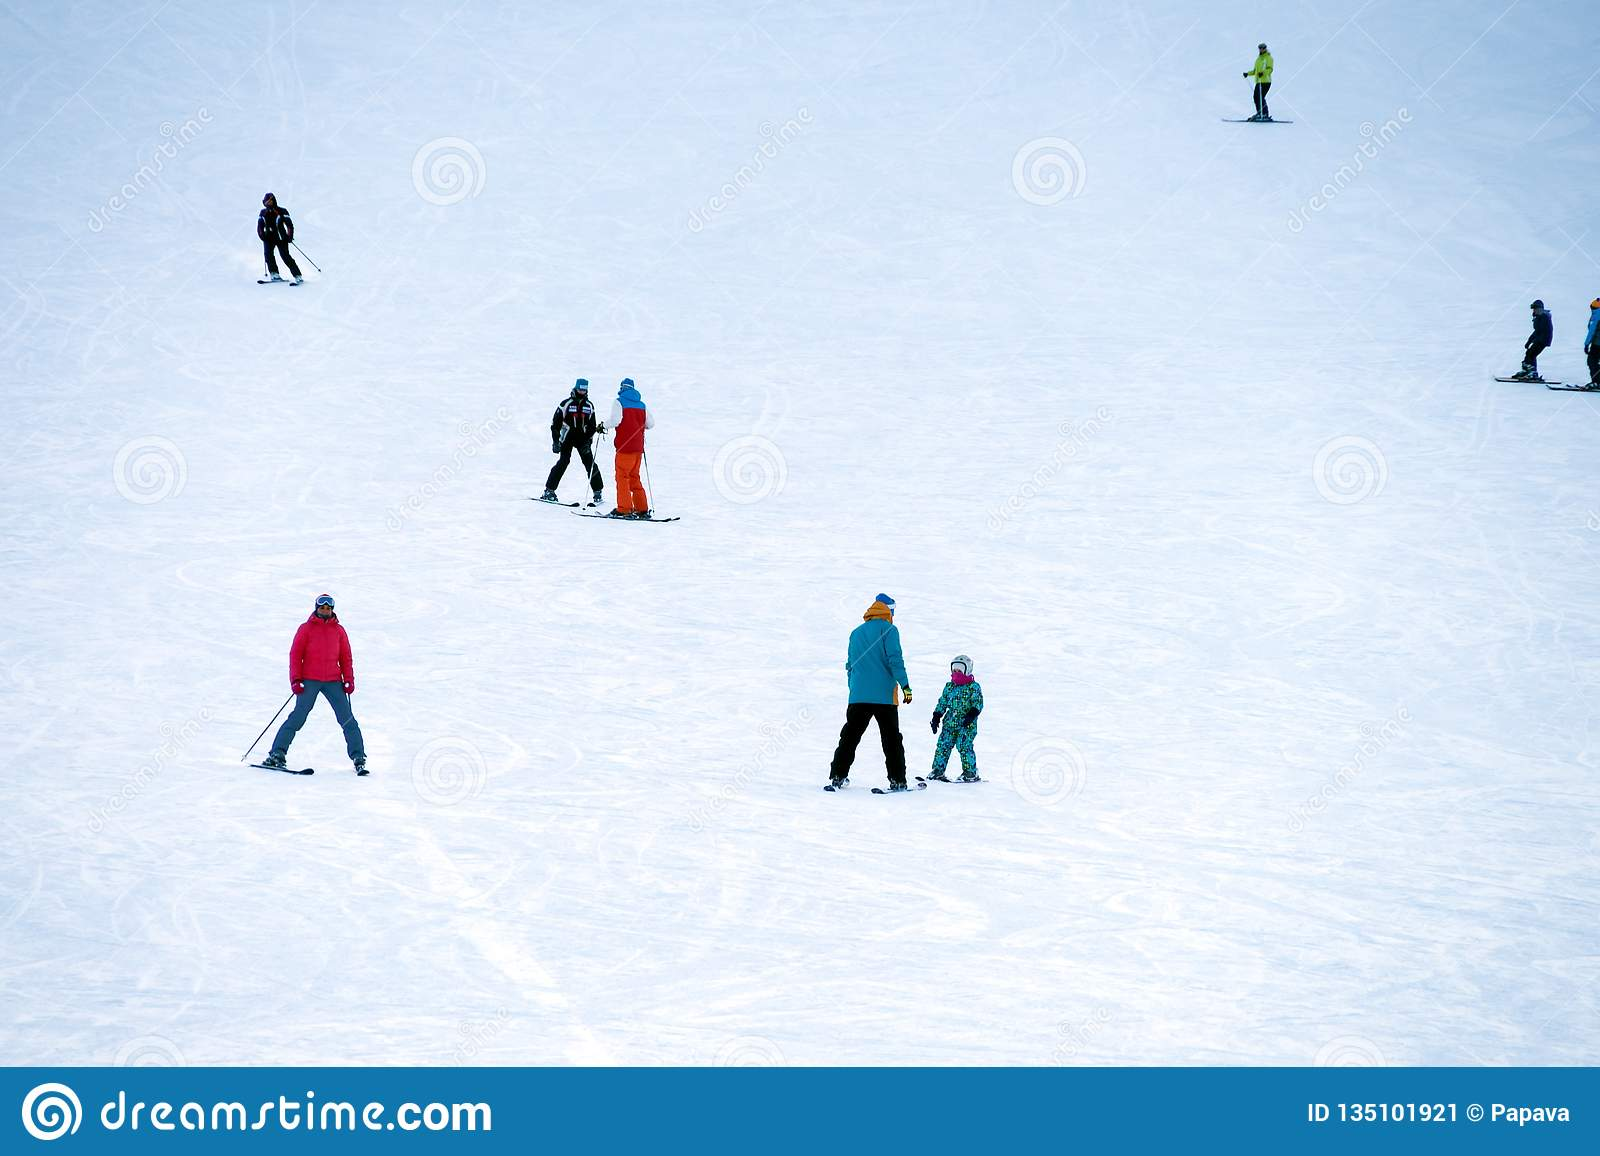 People skiing on the mountainside at the weekend